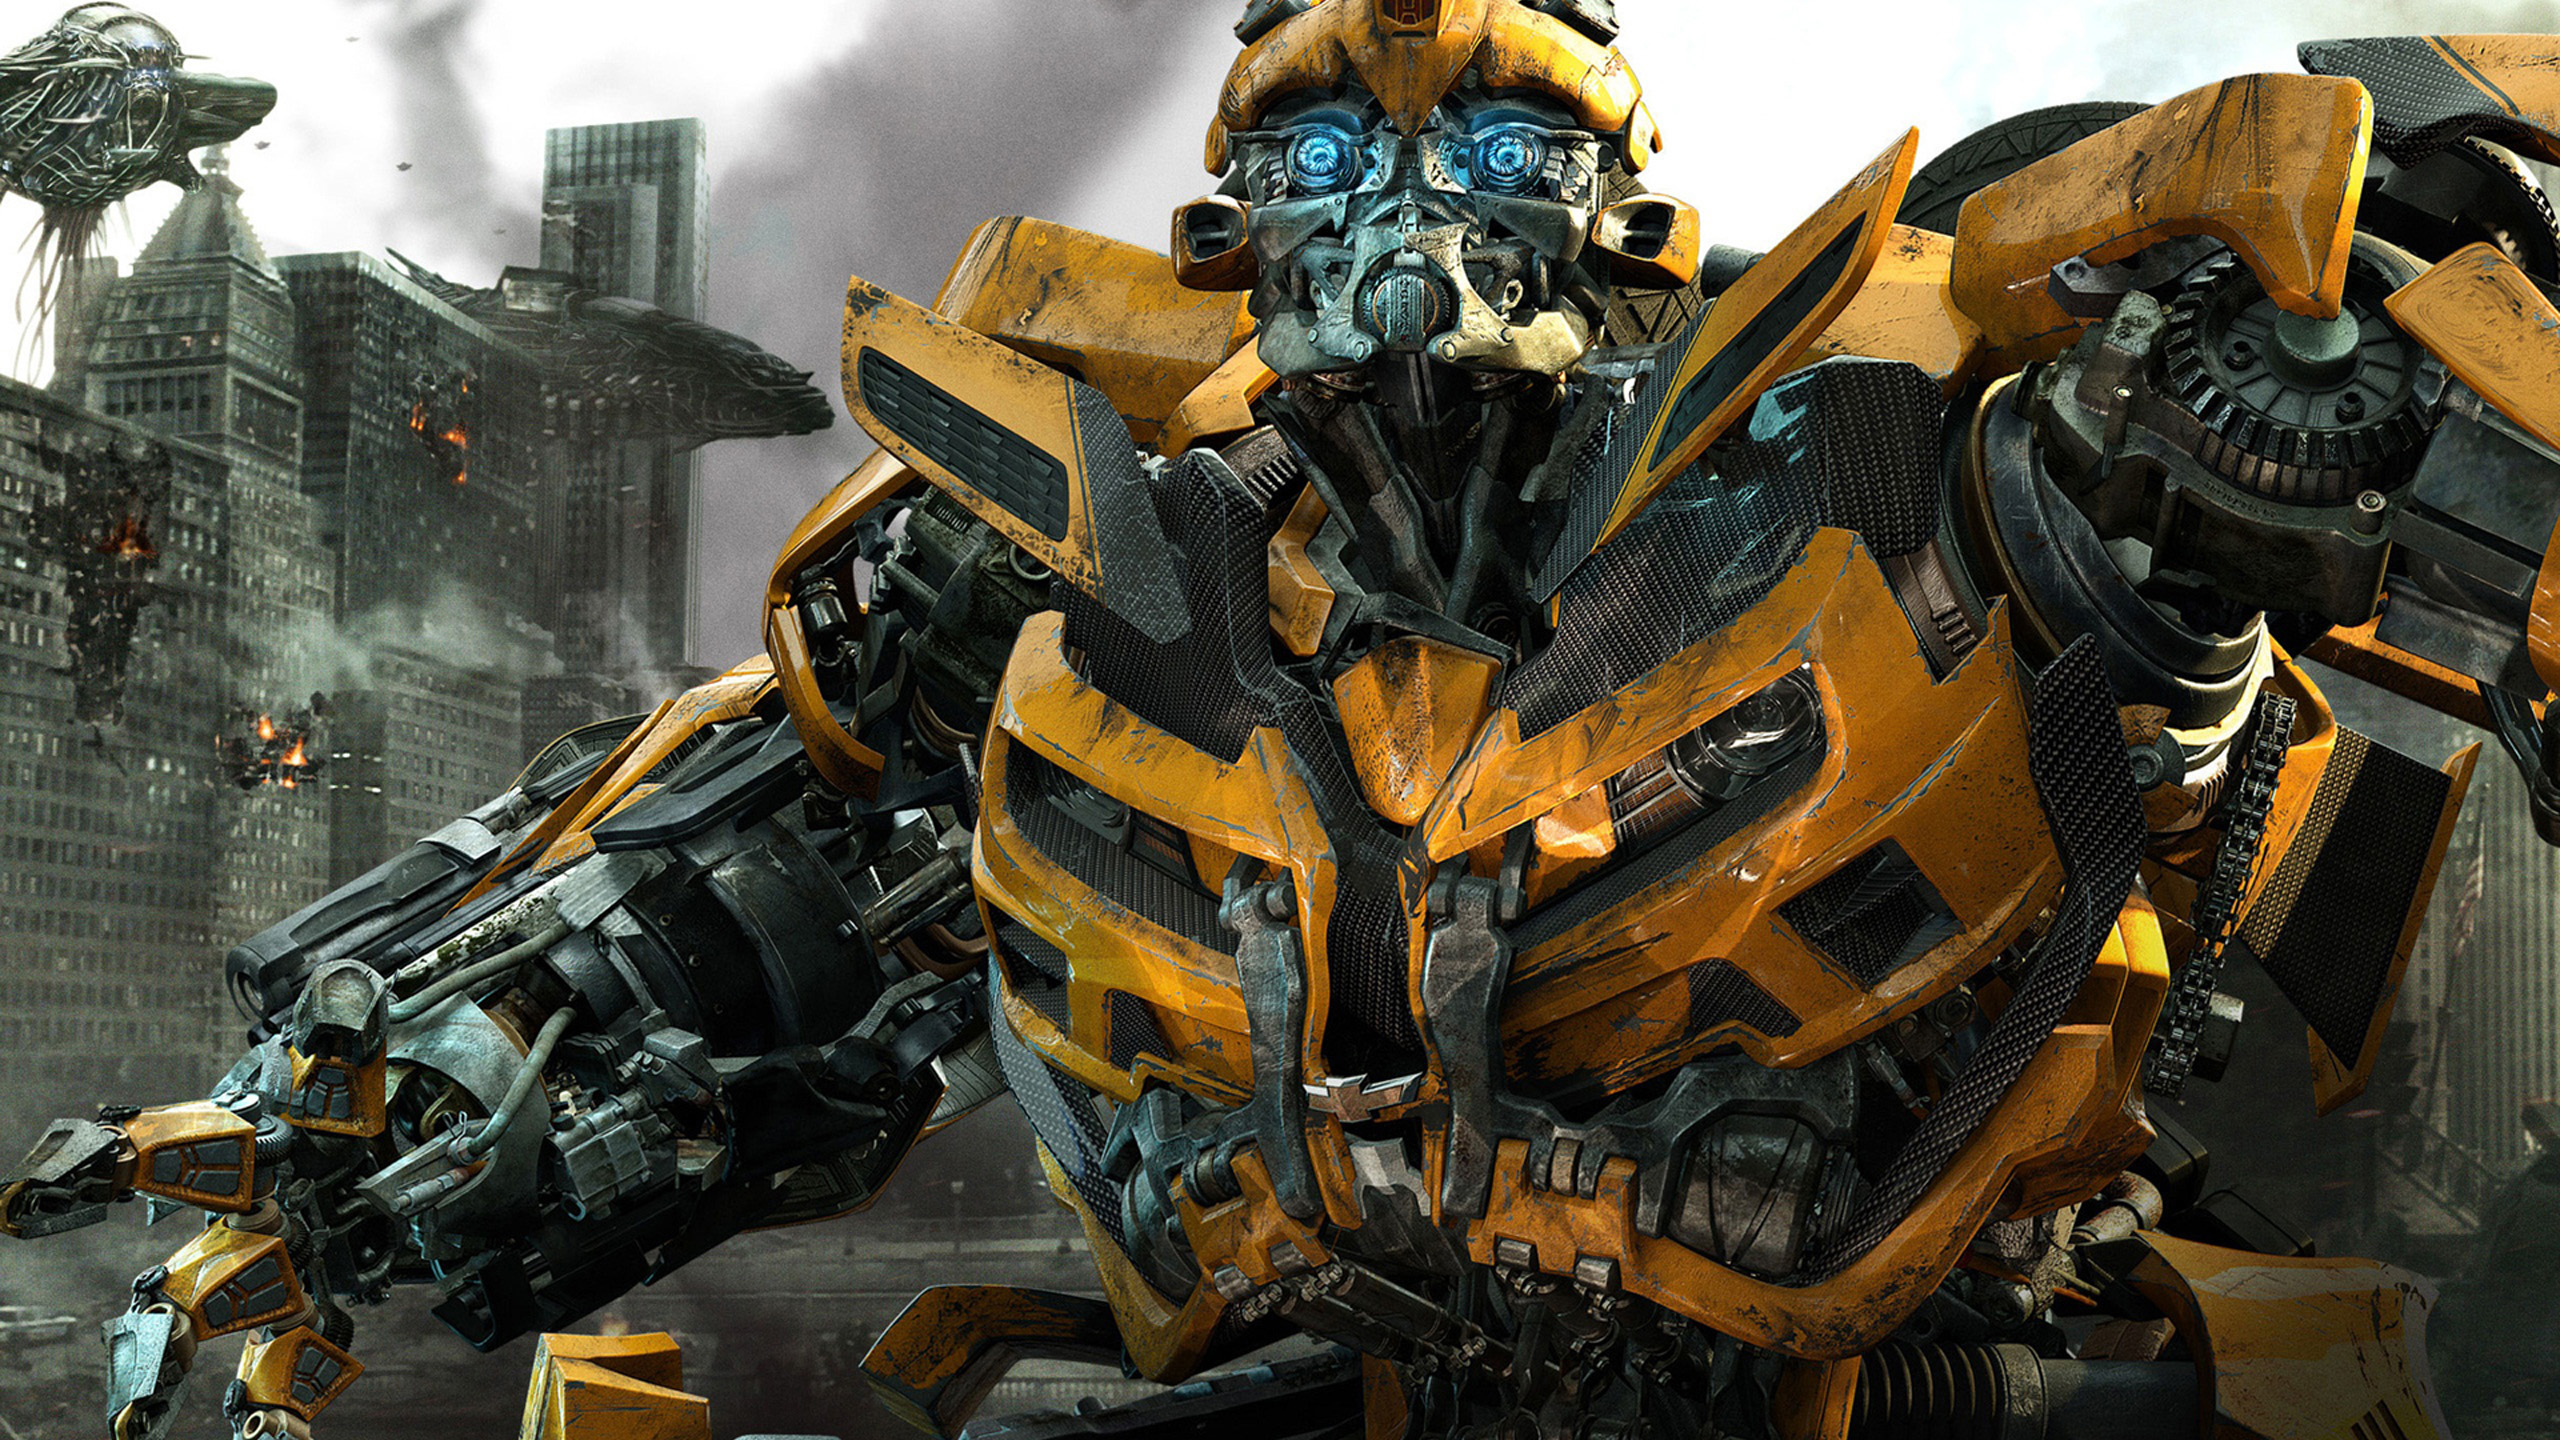 Transformer HD Wallpaper